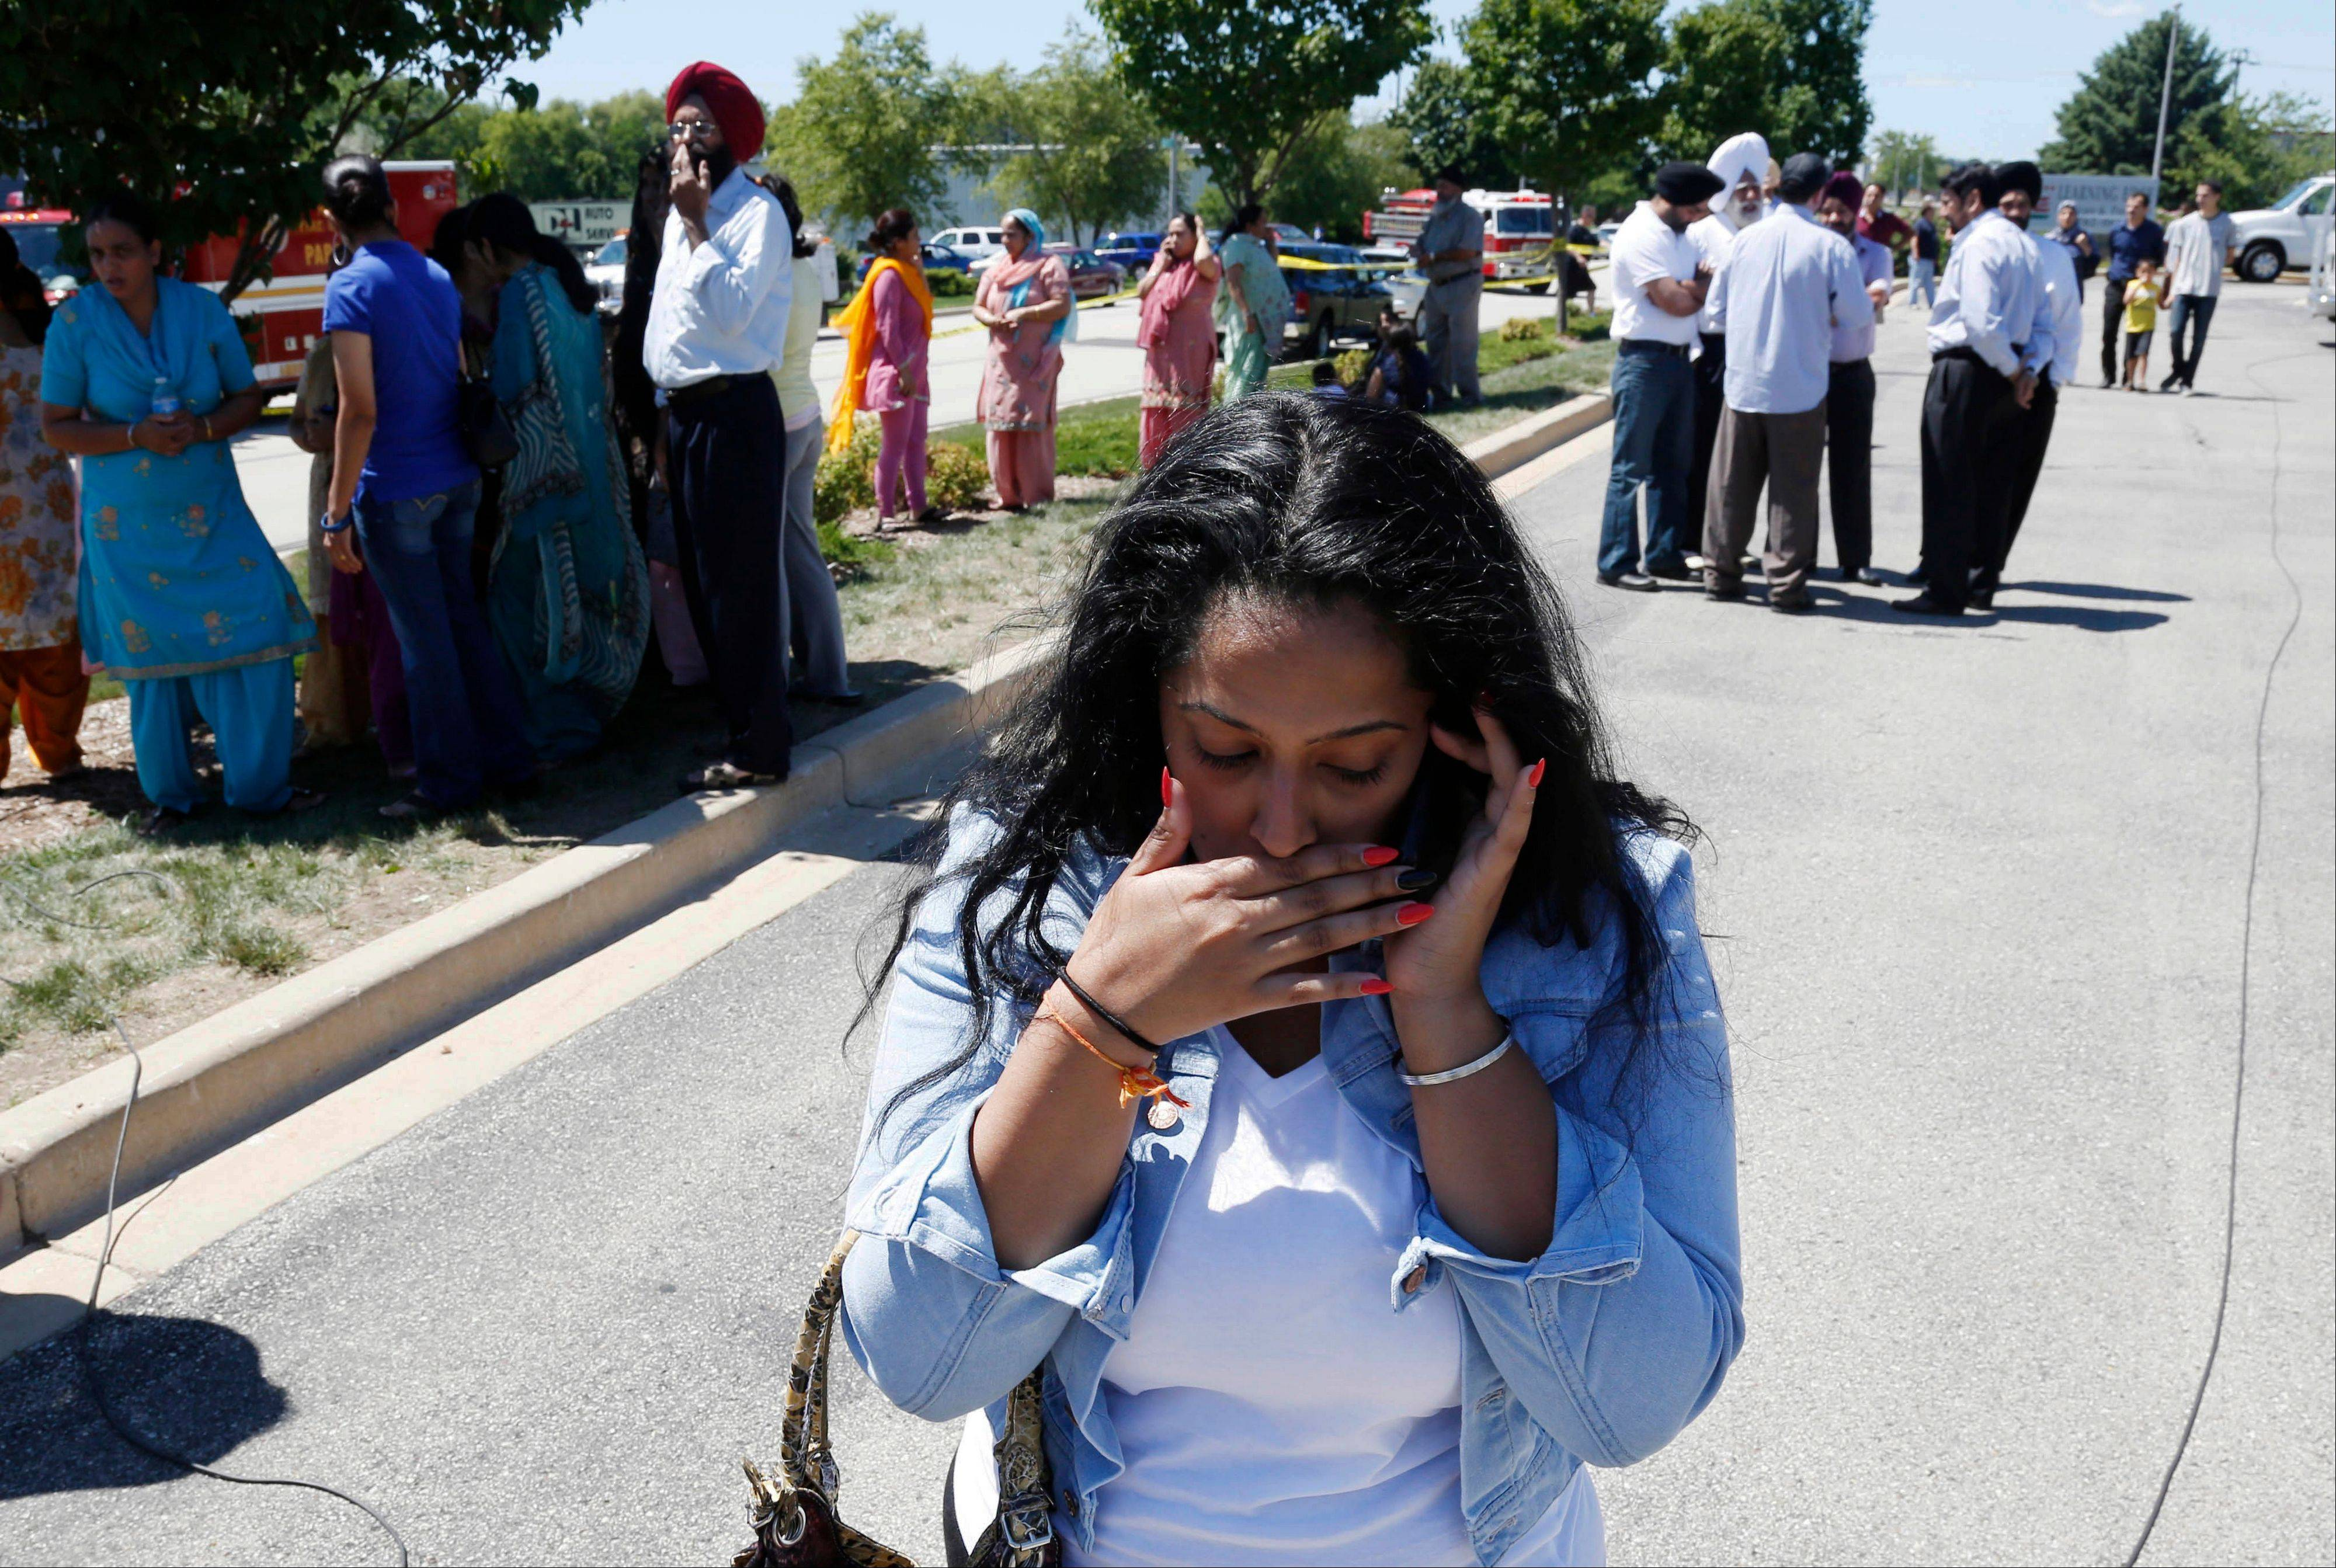 A woman reacts with others as they await word on a shooting at a Sikh temple in Oak Creek, Wis., on Sunday.